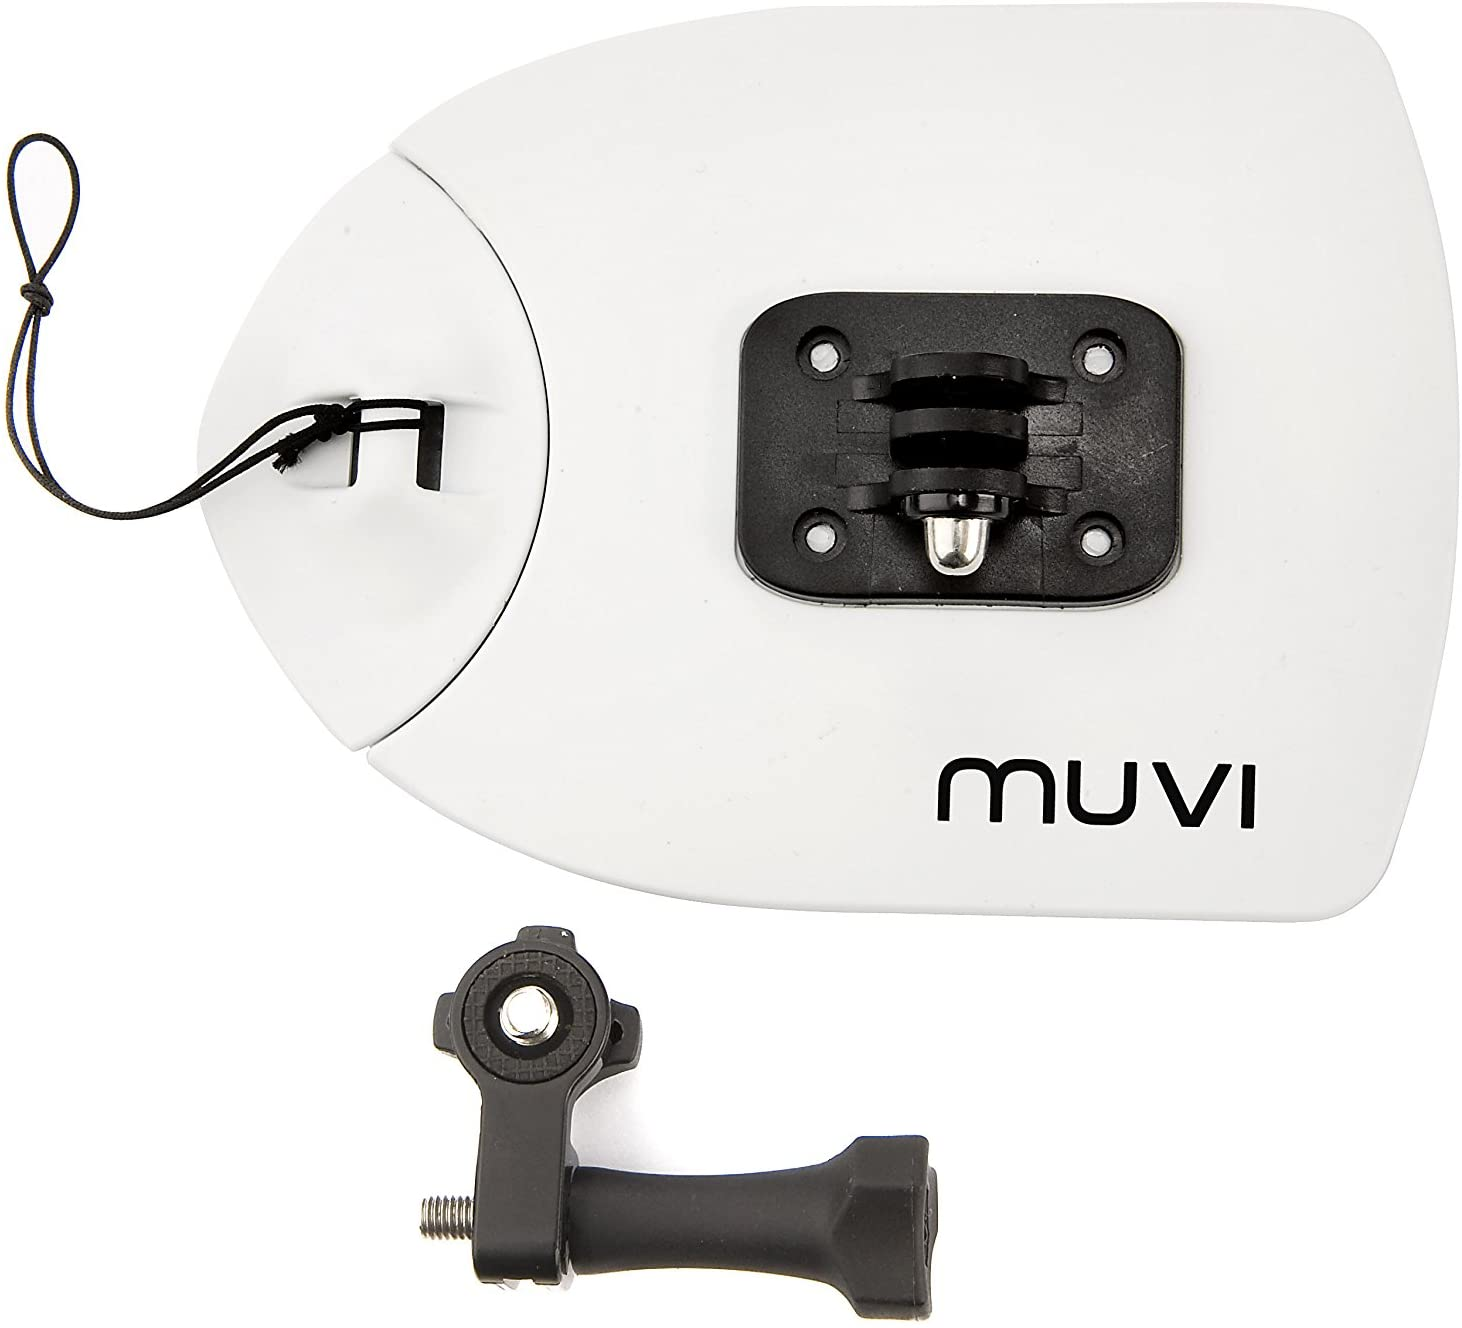 Veho Muvi Flat Board Mount for Snowboard/Surfboard Mount for Muvi KX-Series | Muvi K-Series | Muvi HD | Muvi Micro - White (VCC-A015-FBM)